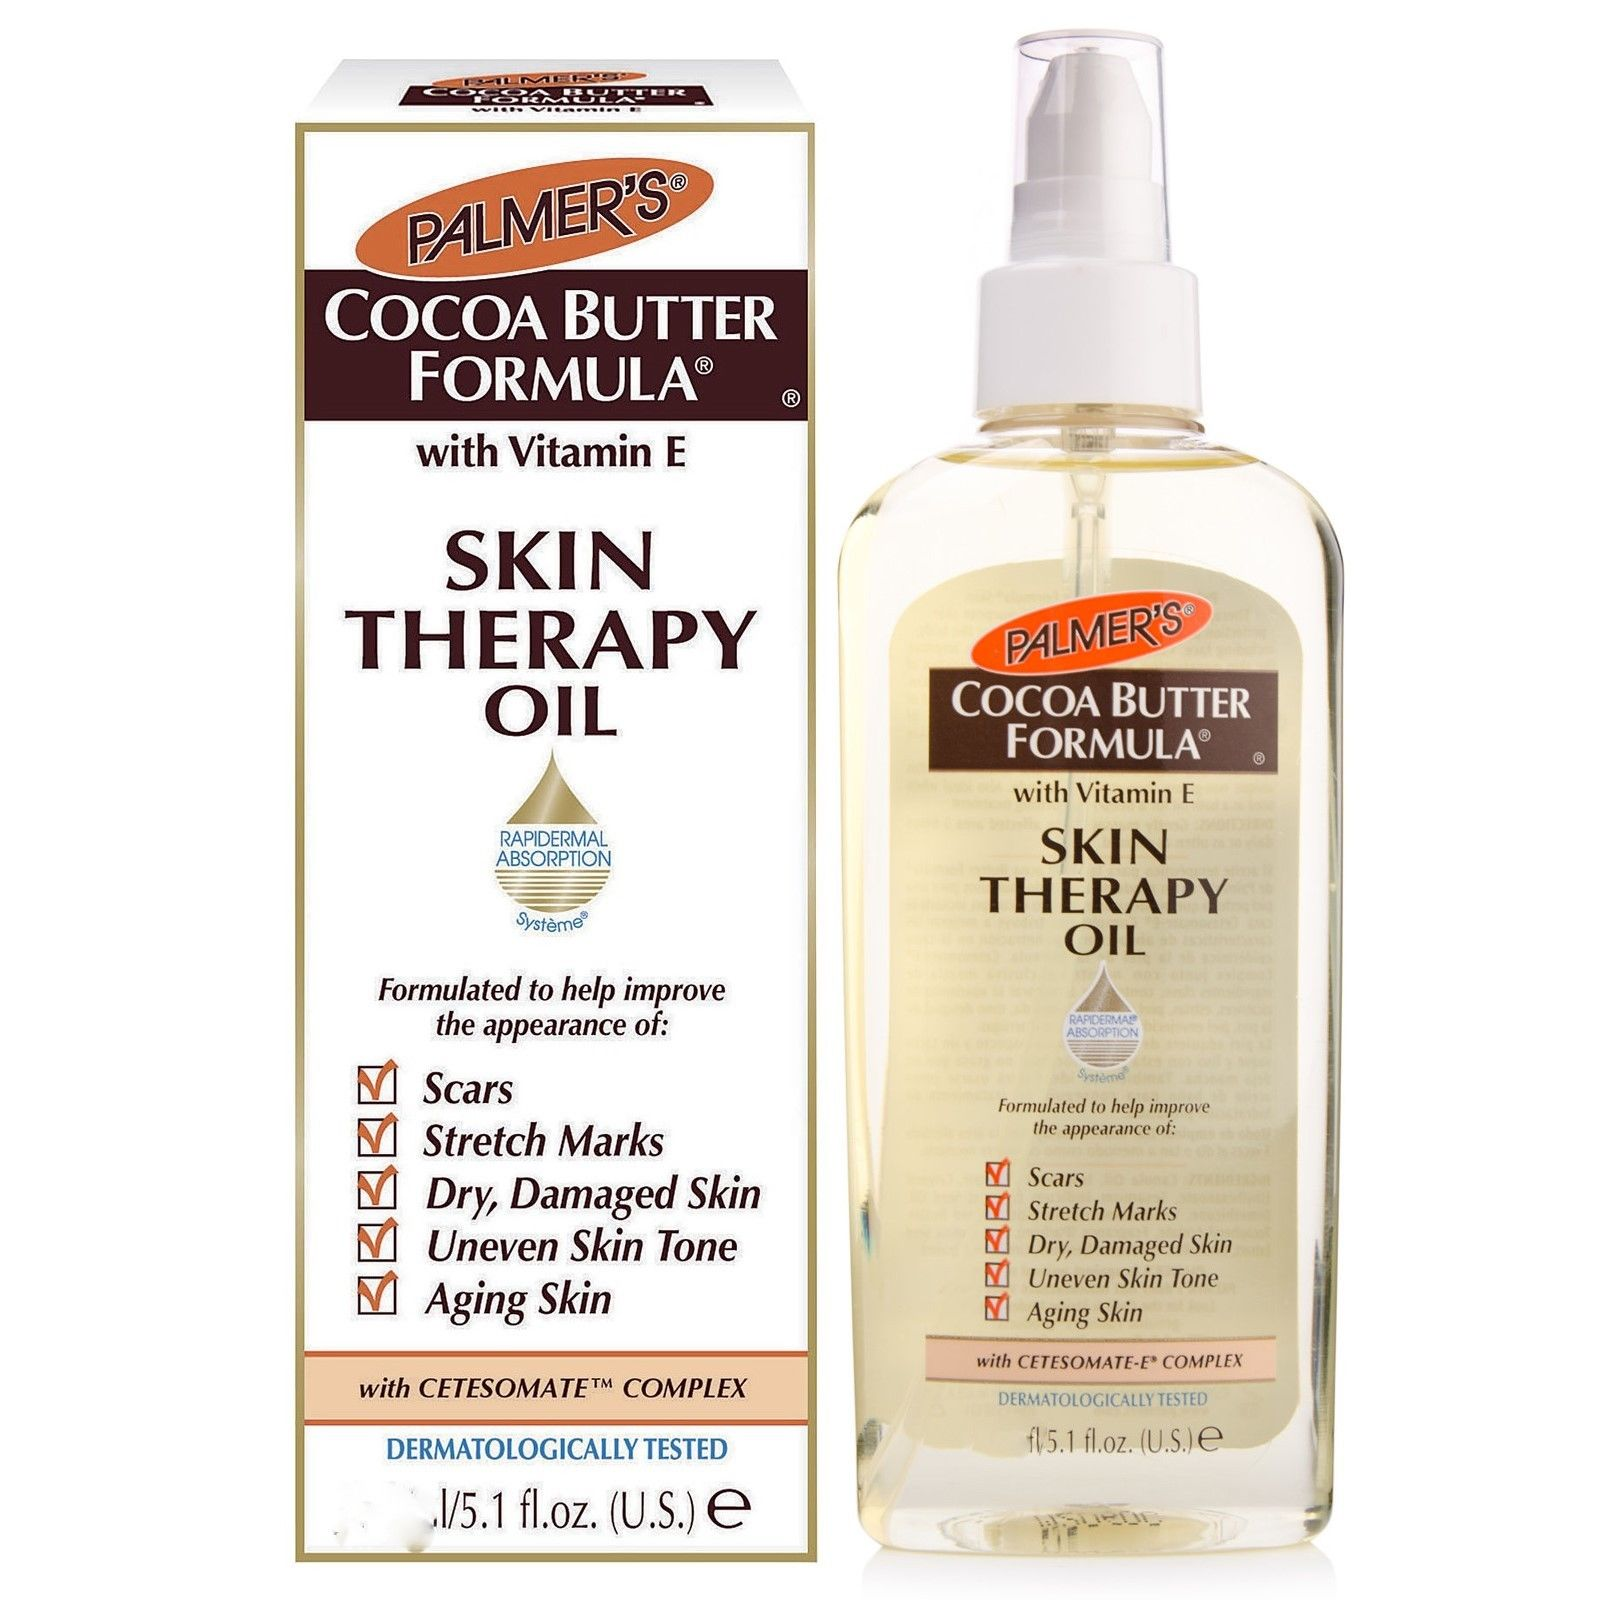 Cocoa butter penetrate skin